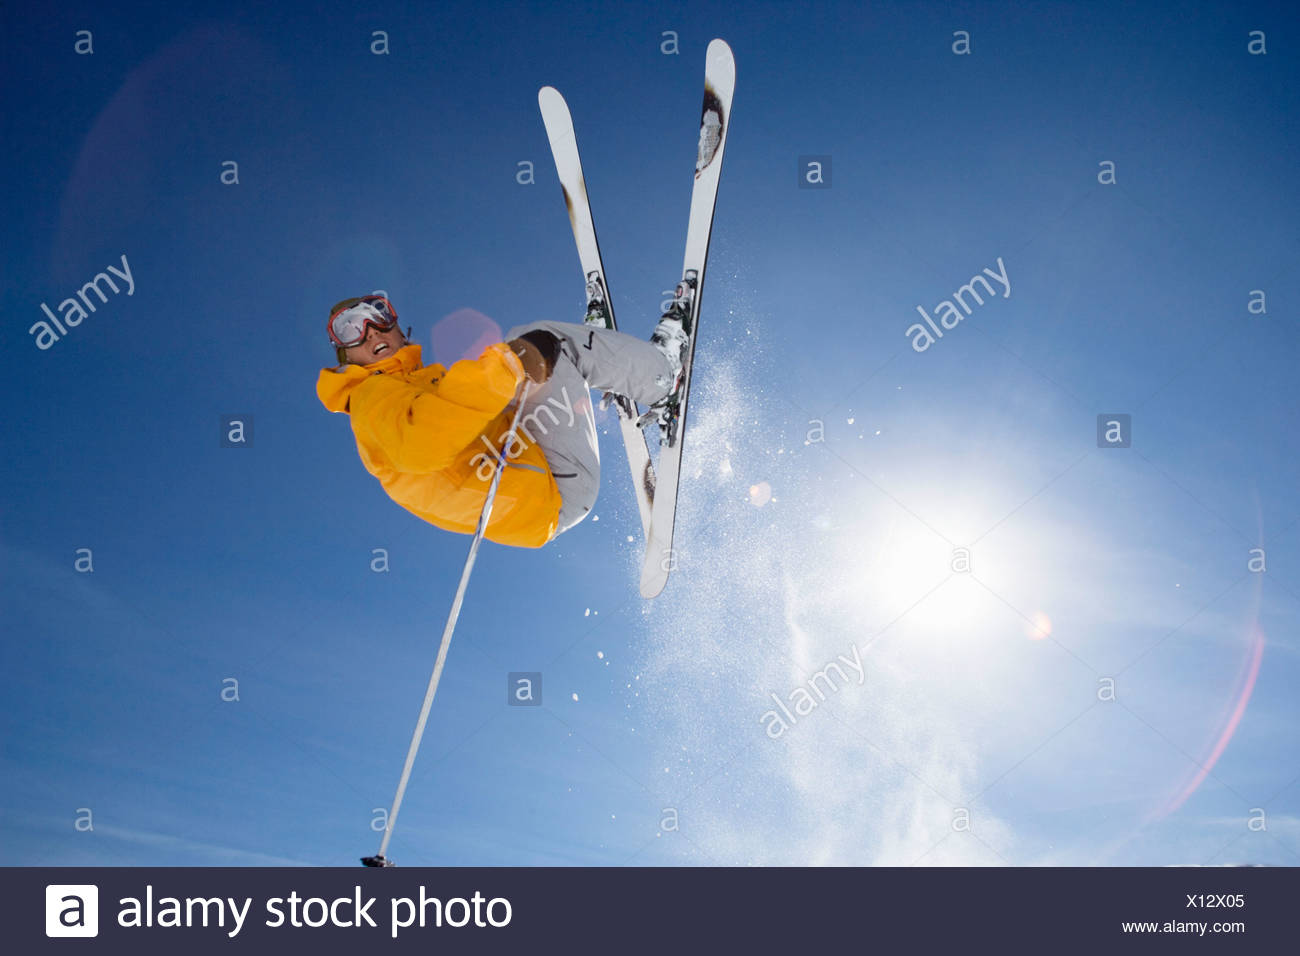 Skier jumping shot from bellow - Stock Image